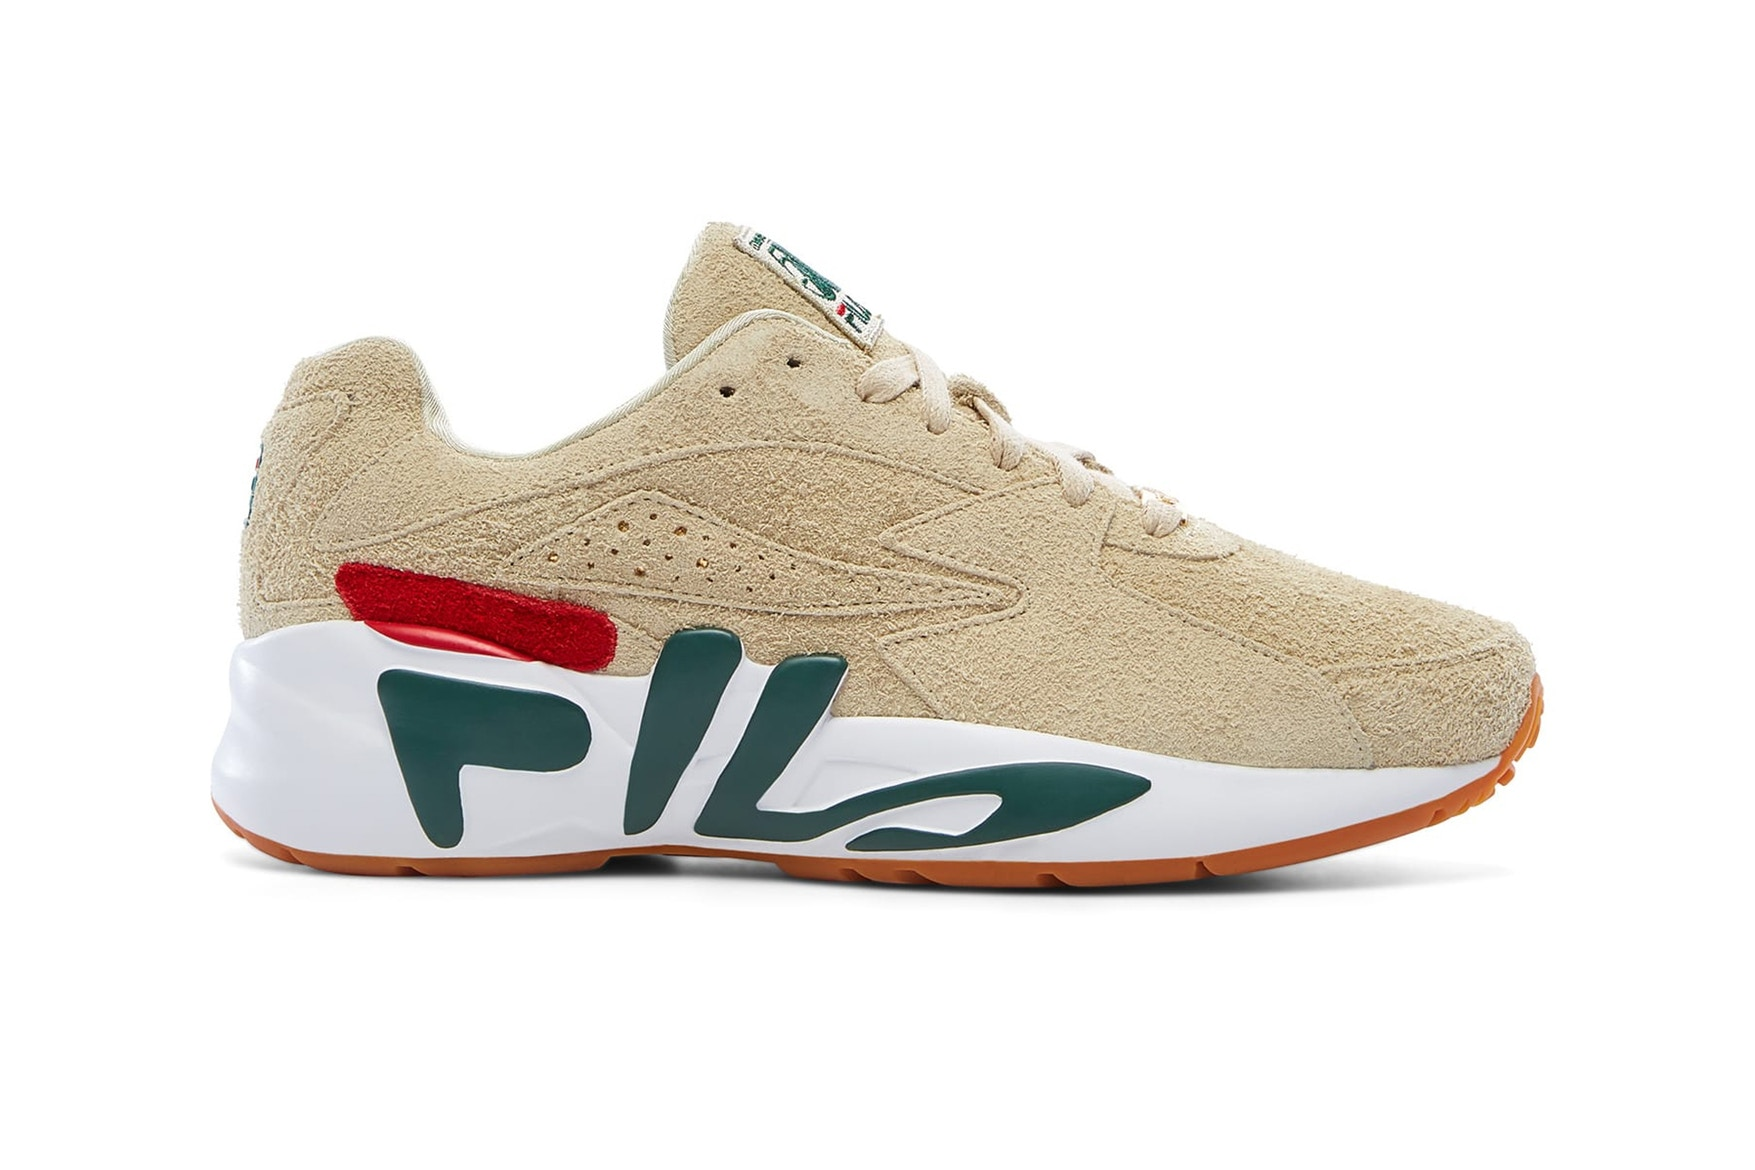 fila-revives-the-classic-mindblower-with-over-40-limited-edition-collaborations-12